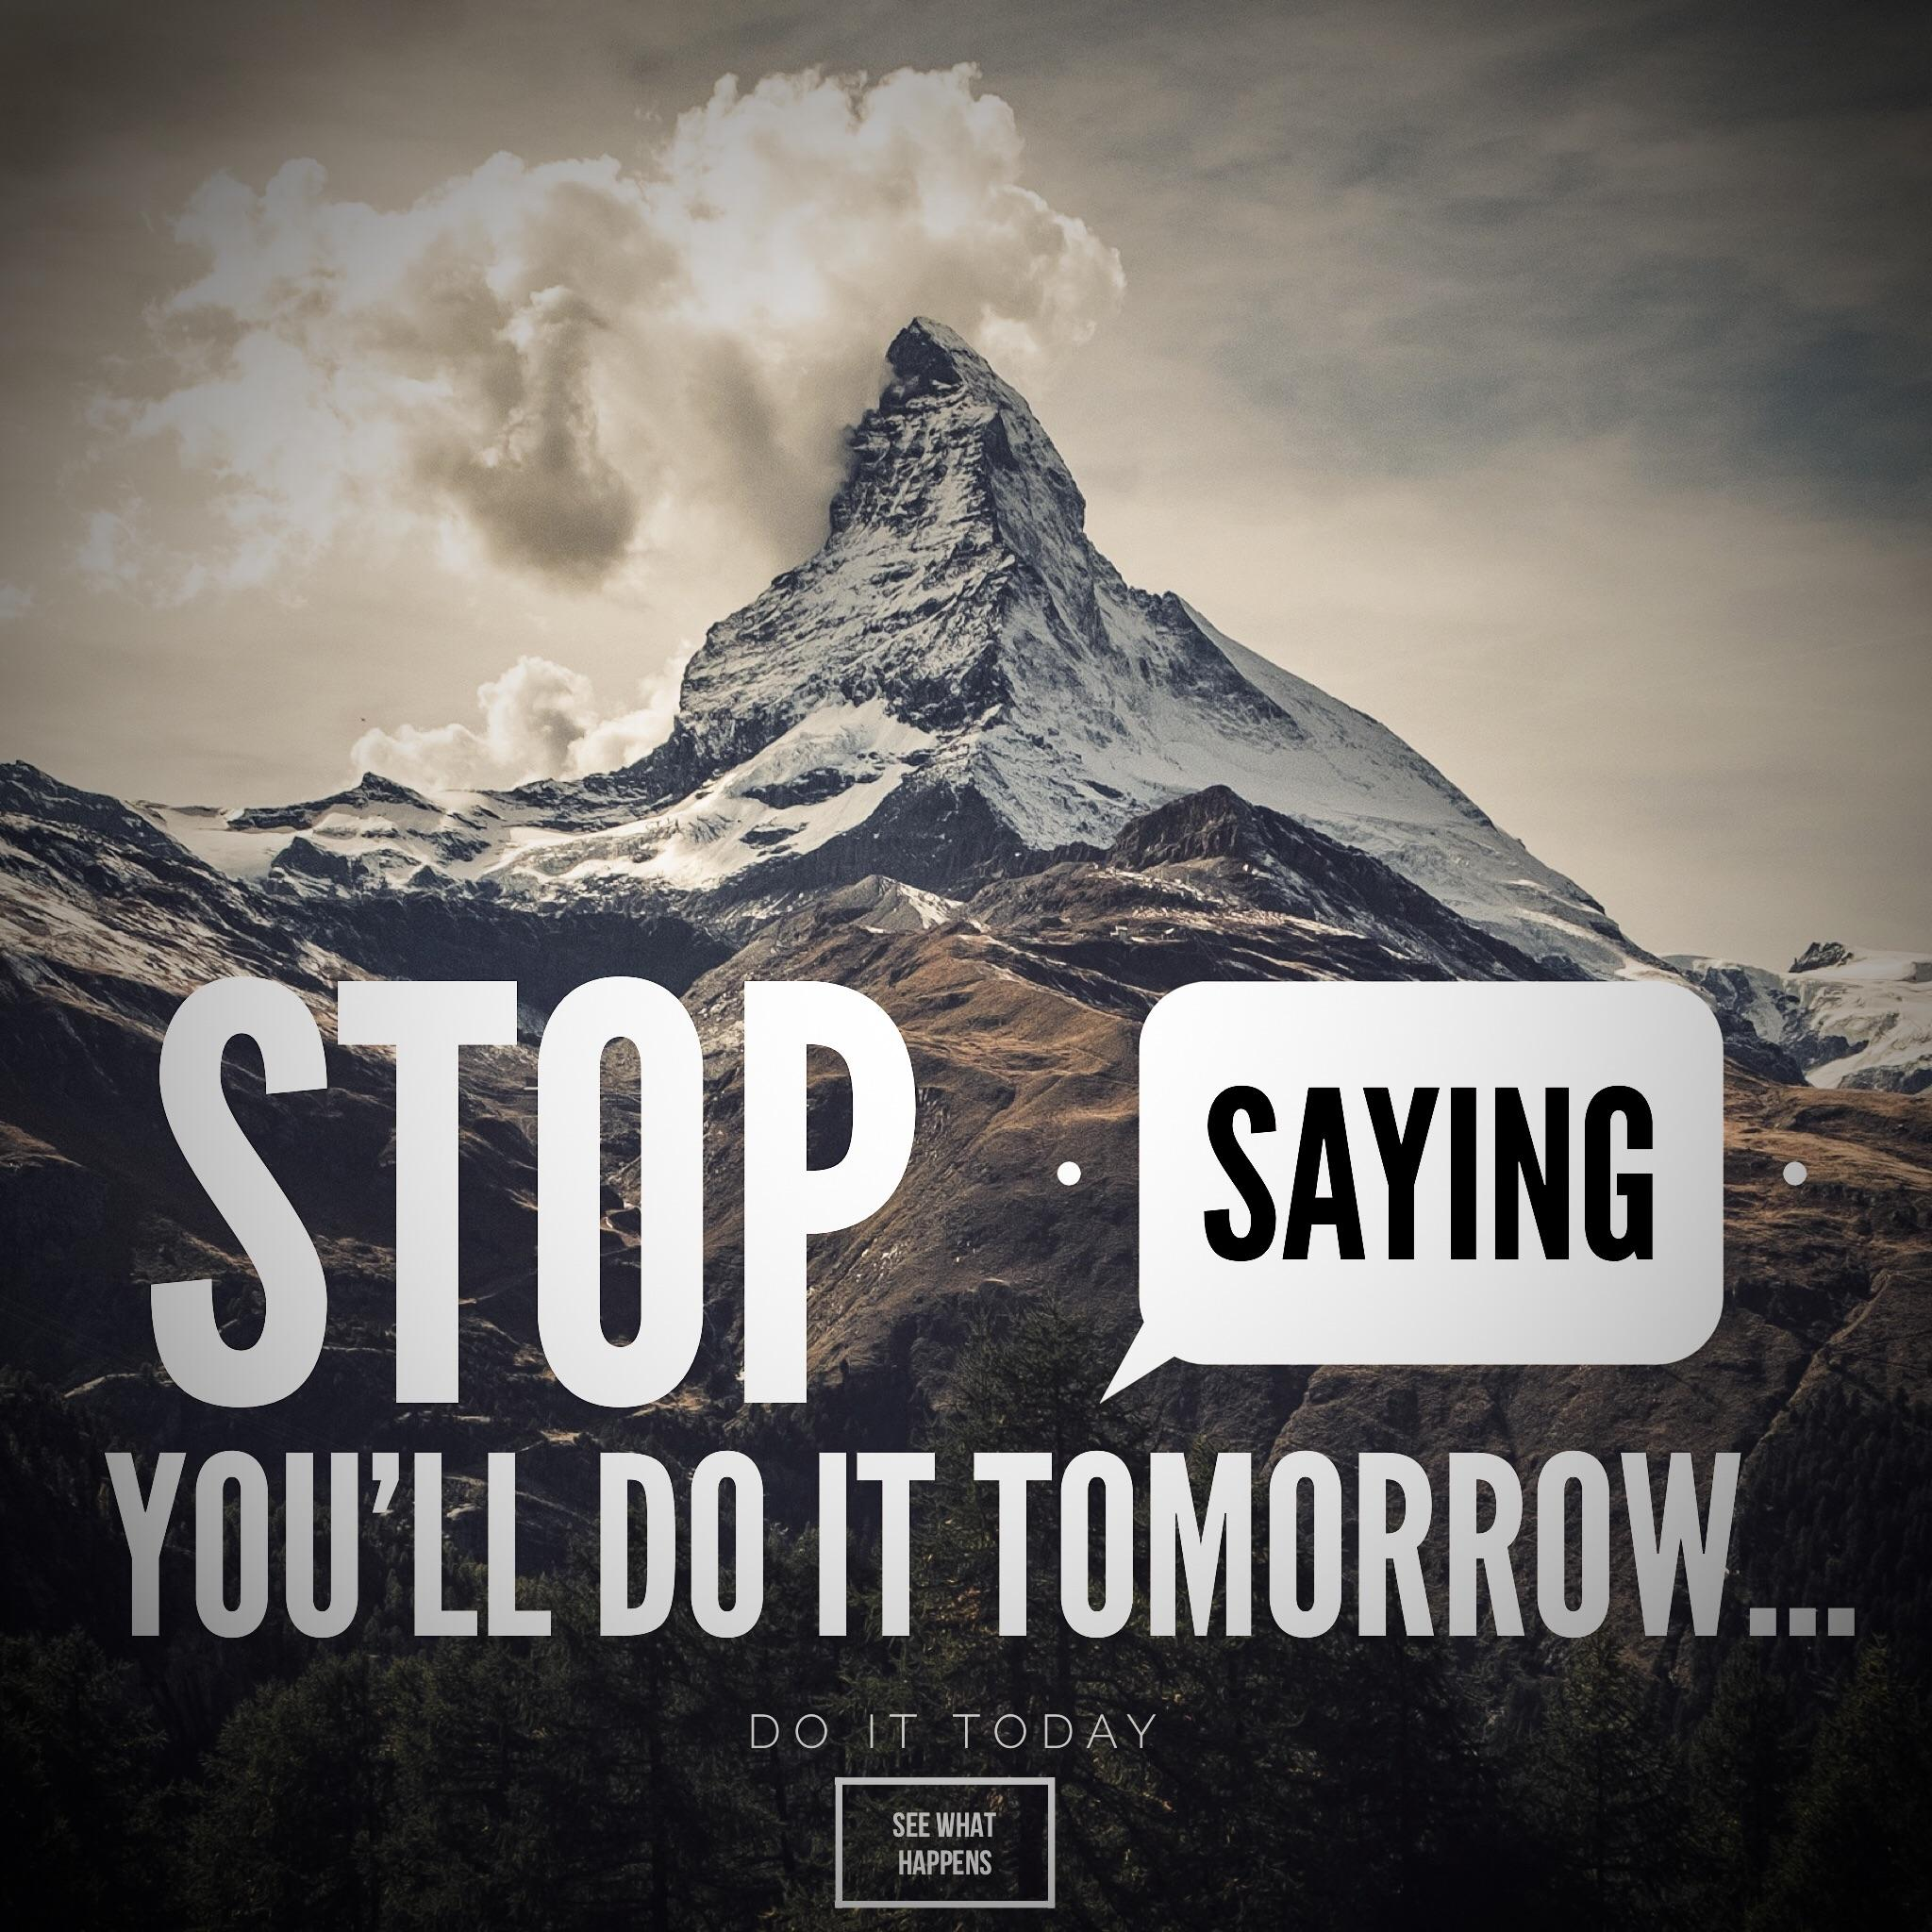 [Image] Stop Saying Tomorrow… Pick One Thing Today You've been Putting Off, and Just Do It.